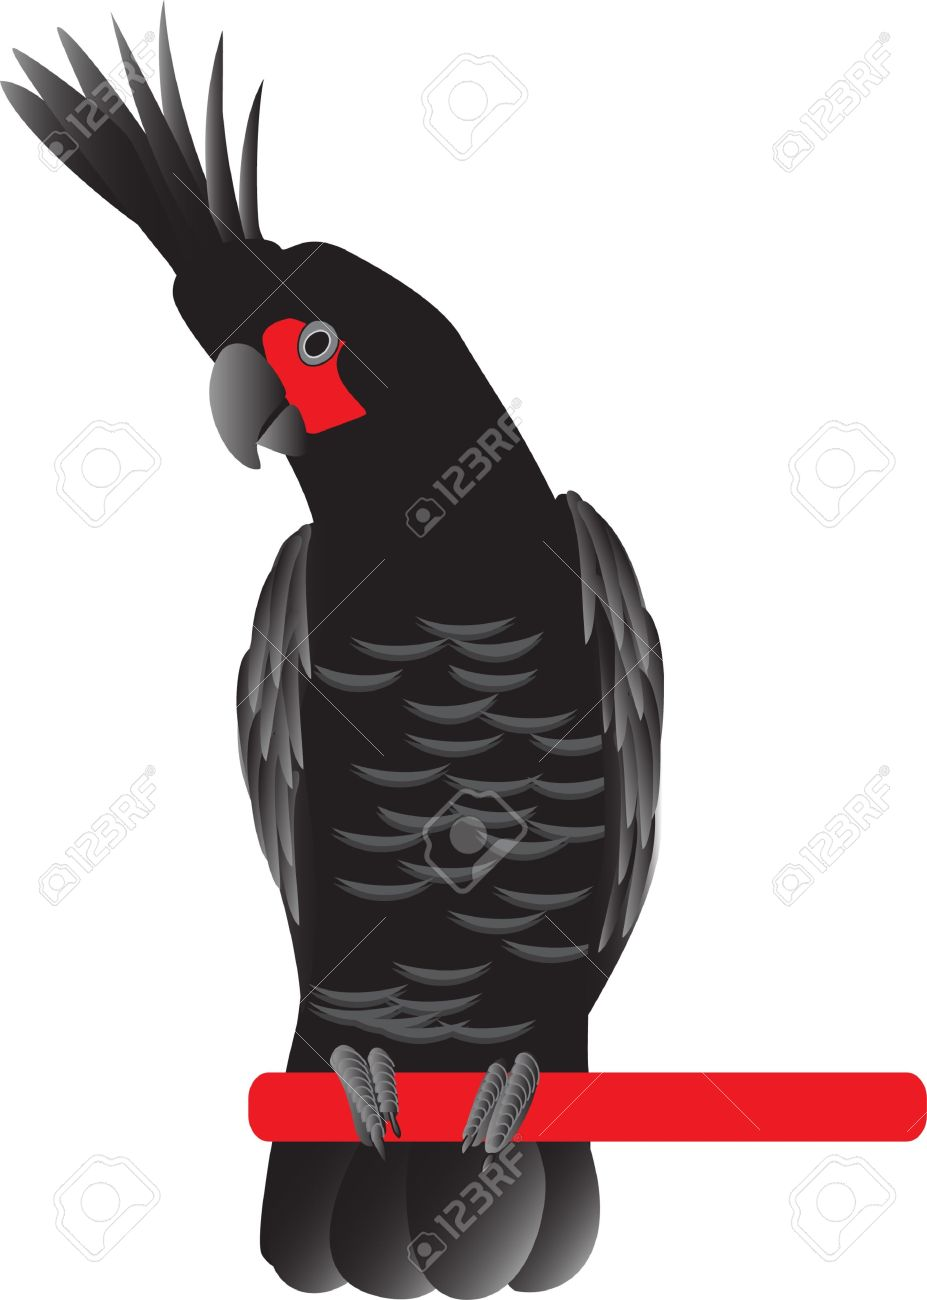 Palm Cockatoo clipart #1, Download drawings